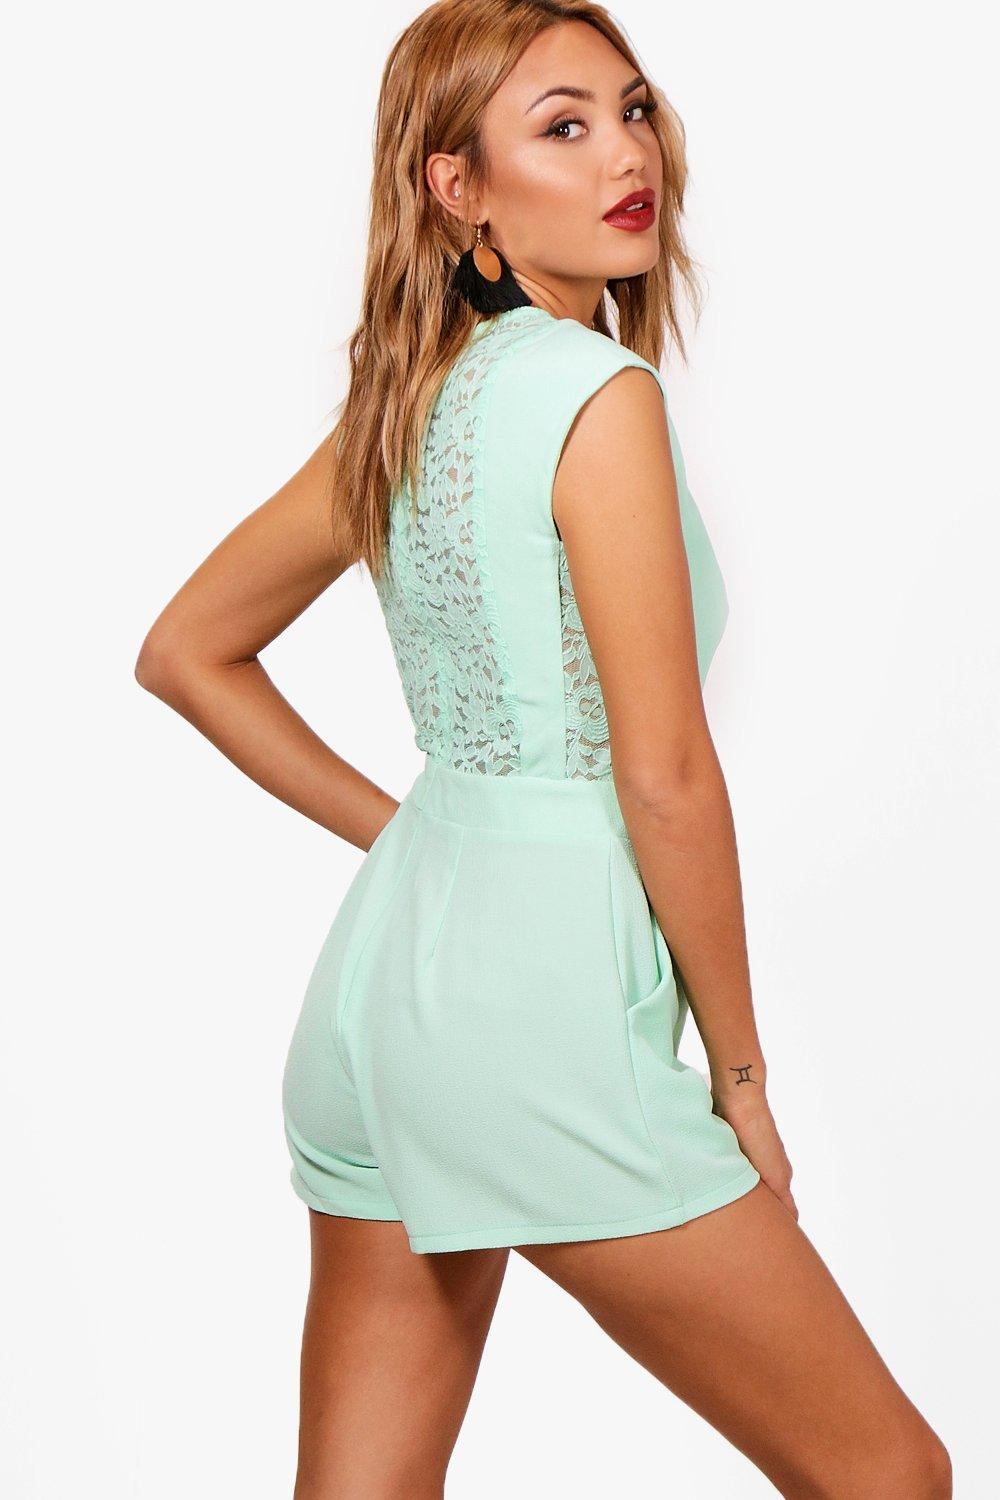 Find great deals on eBay for ladies playsuits. Shop with confidence.